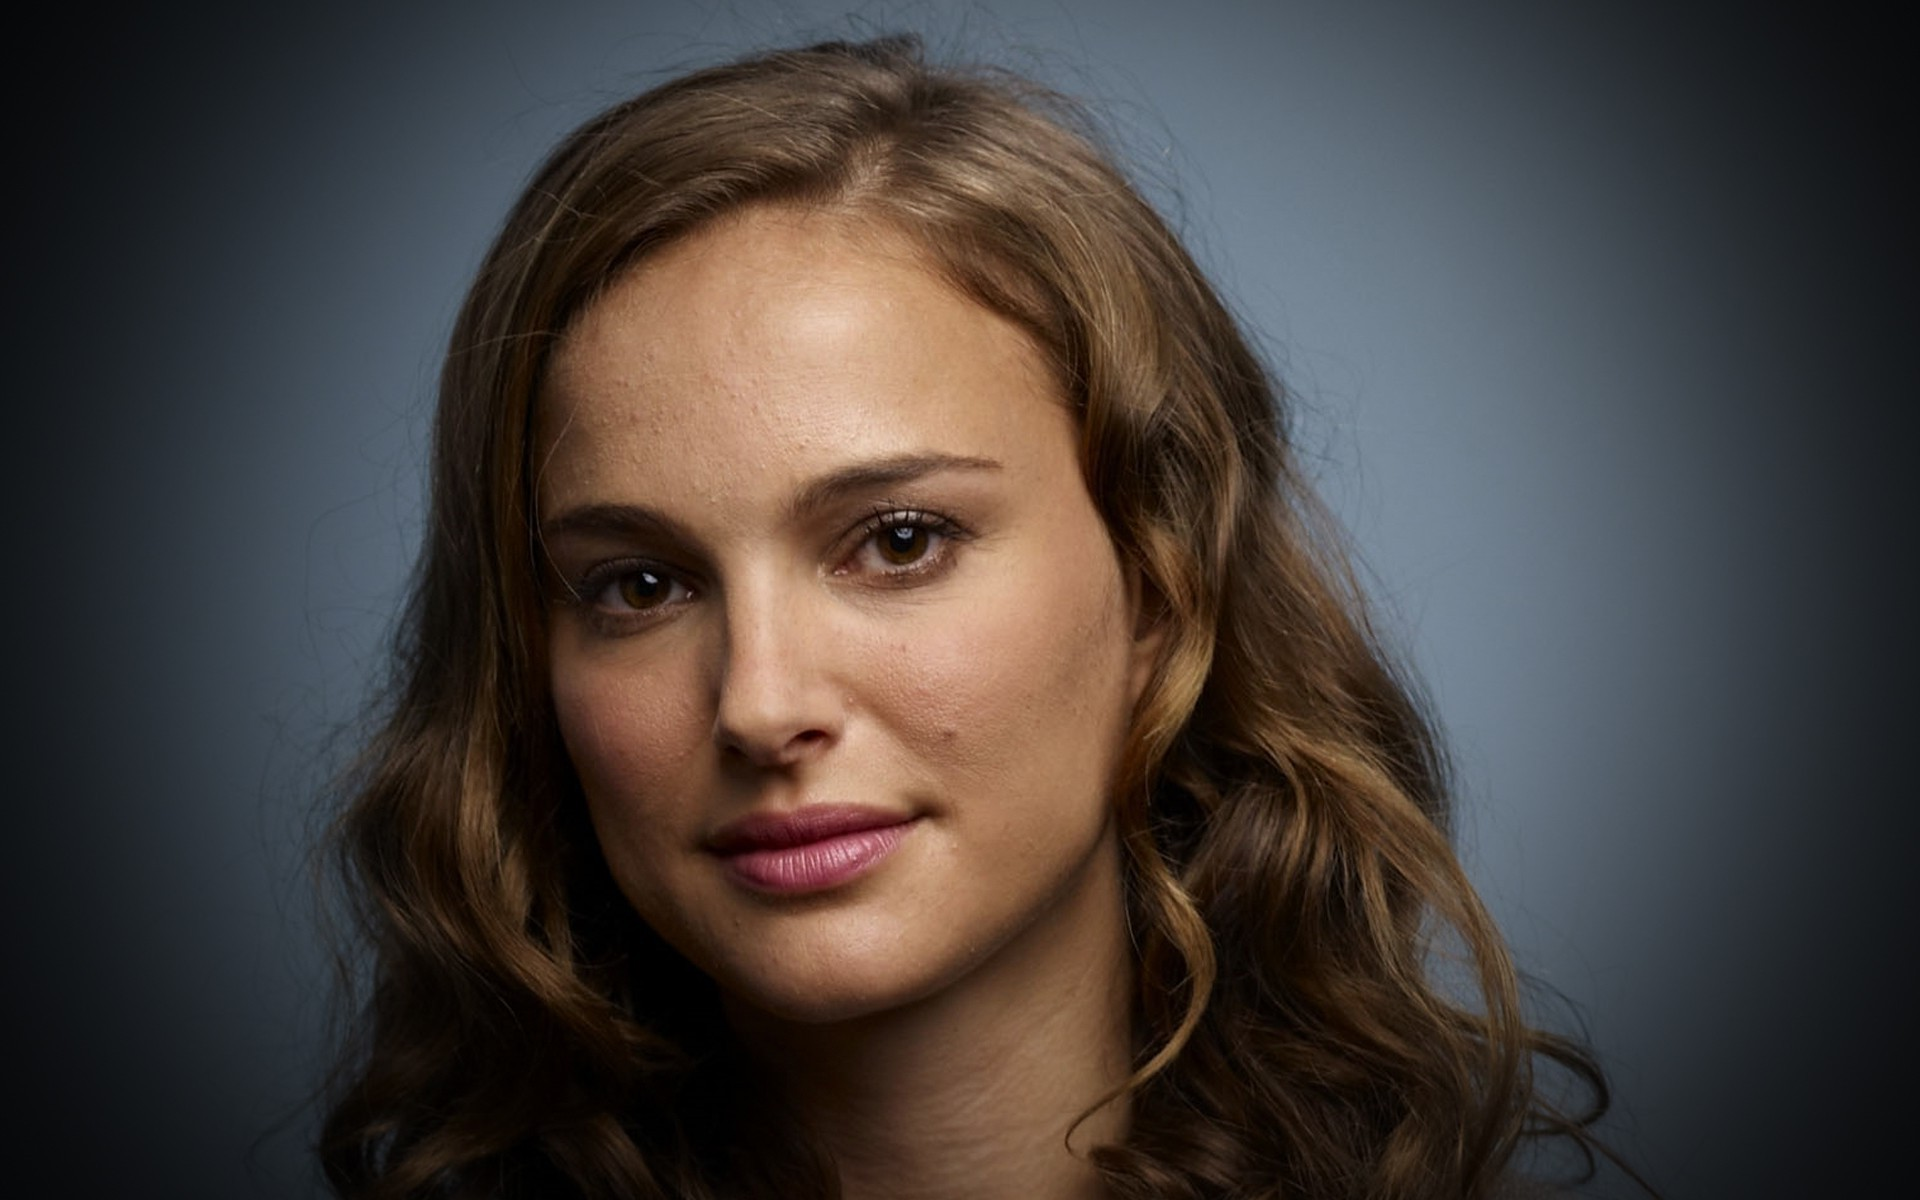 Natalie Portman born NetaLee Hershlag June 9 1981 is a film actress producer and director with dual Israeli and American citizenship She is the recipient of